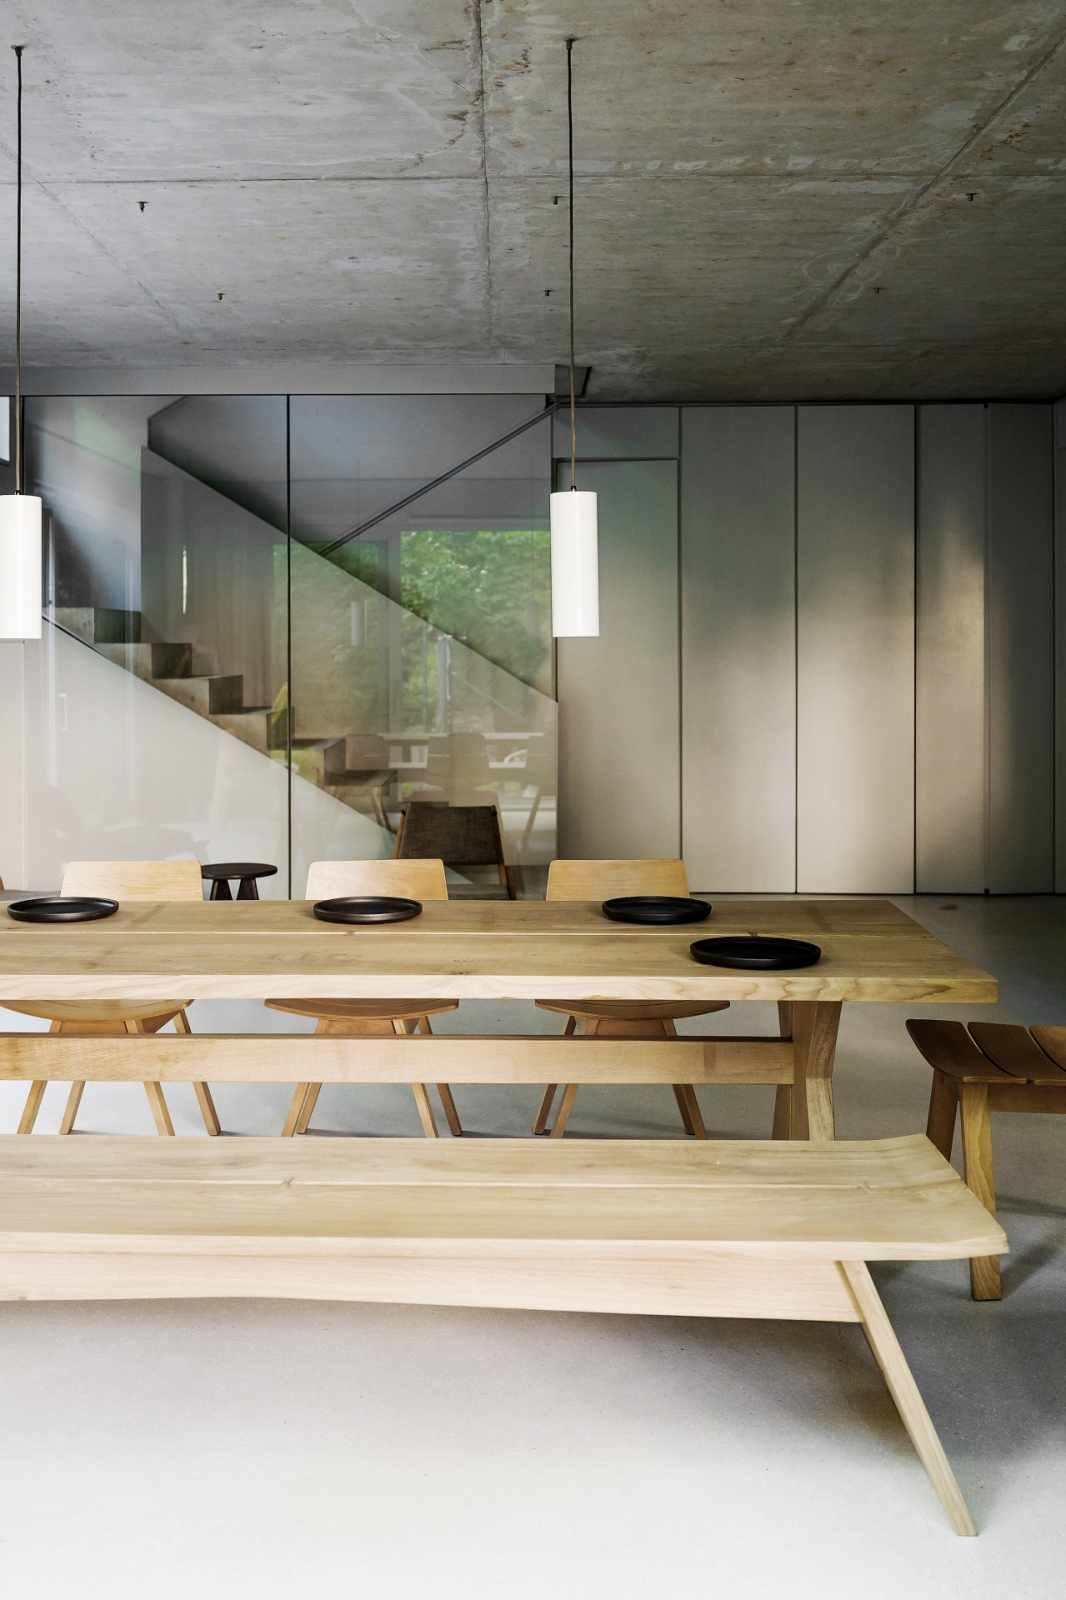 Dining Room, Chair, Table, and Pendant Lighting  House on Prenzlauer Berg